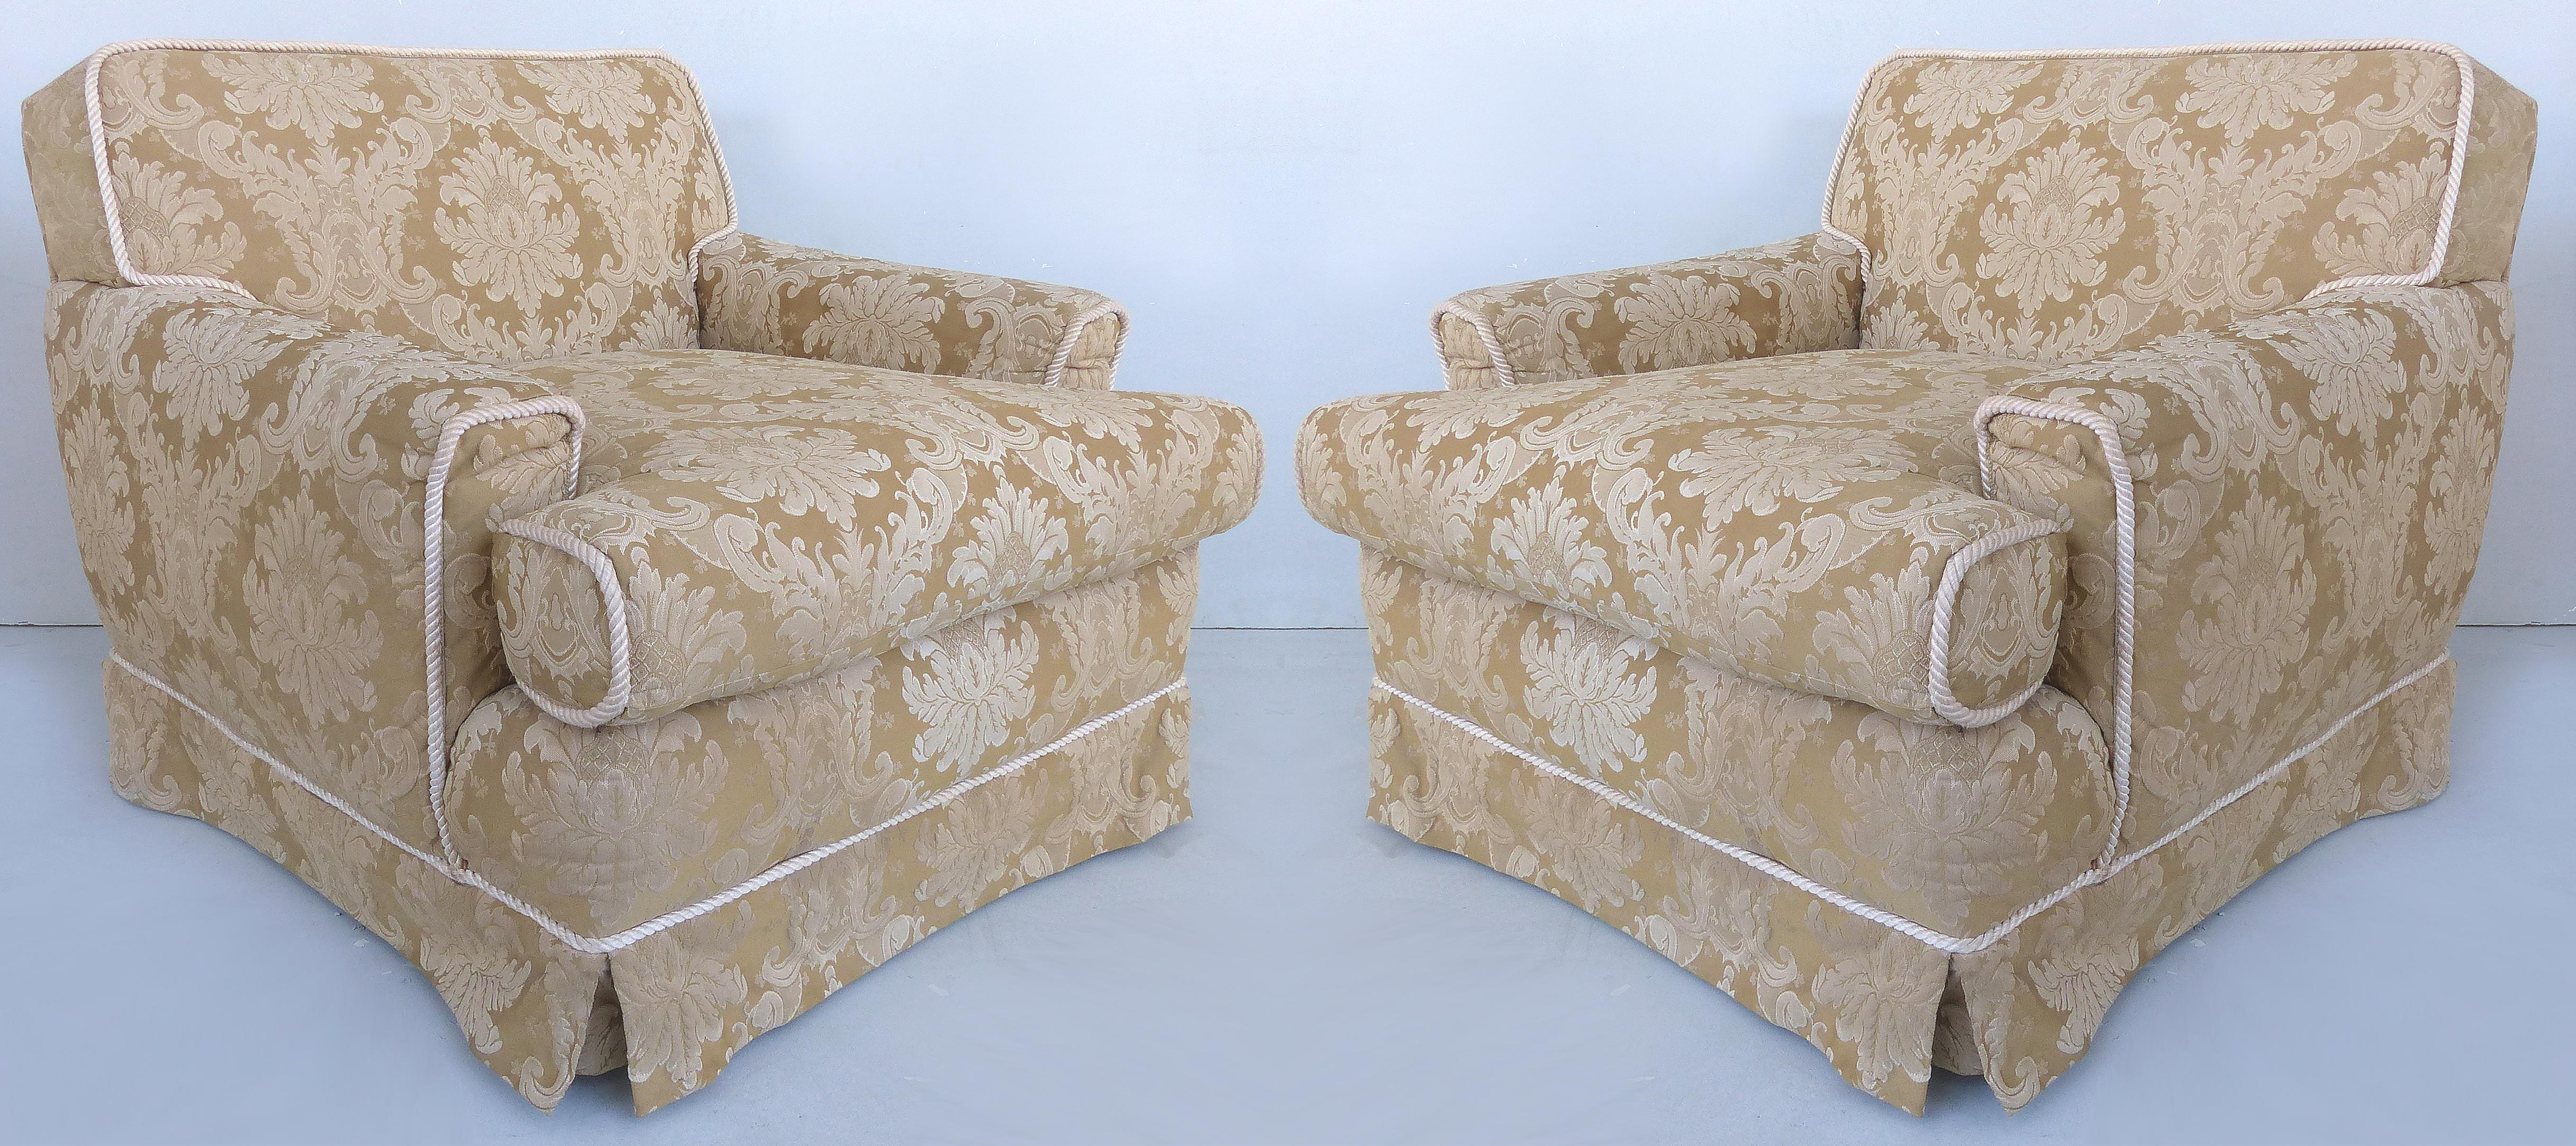 rope bottom chair navy wingback slipcover damask down filled cushion skirted trim club chairs a pair